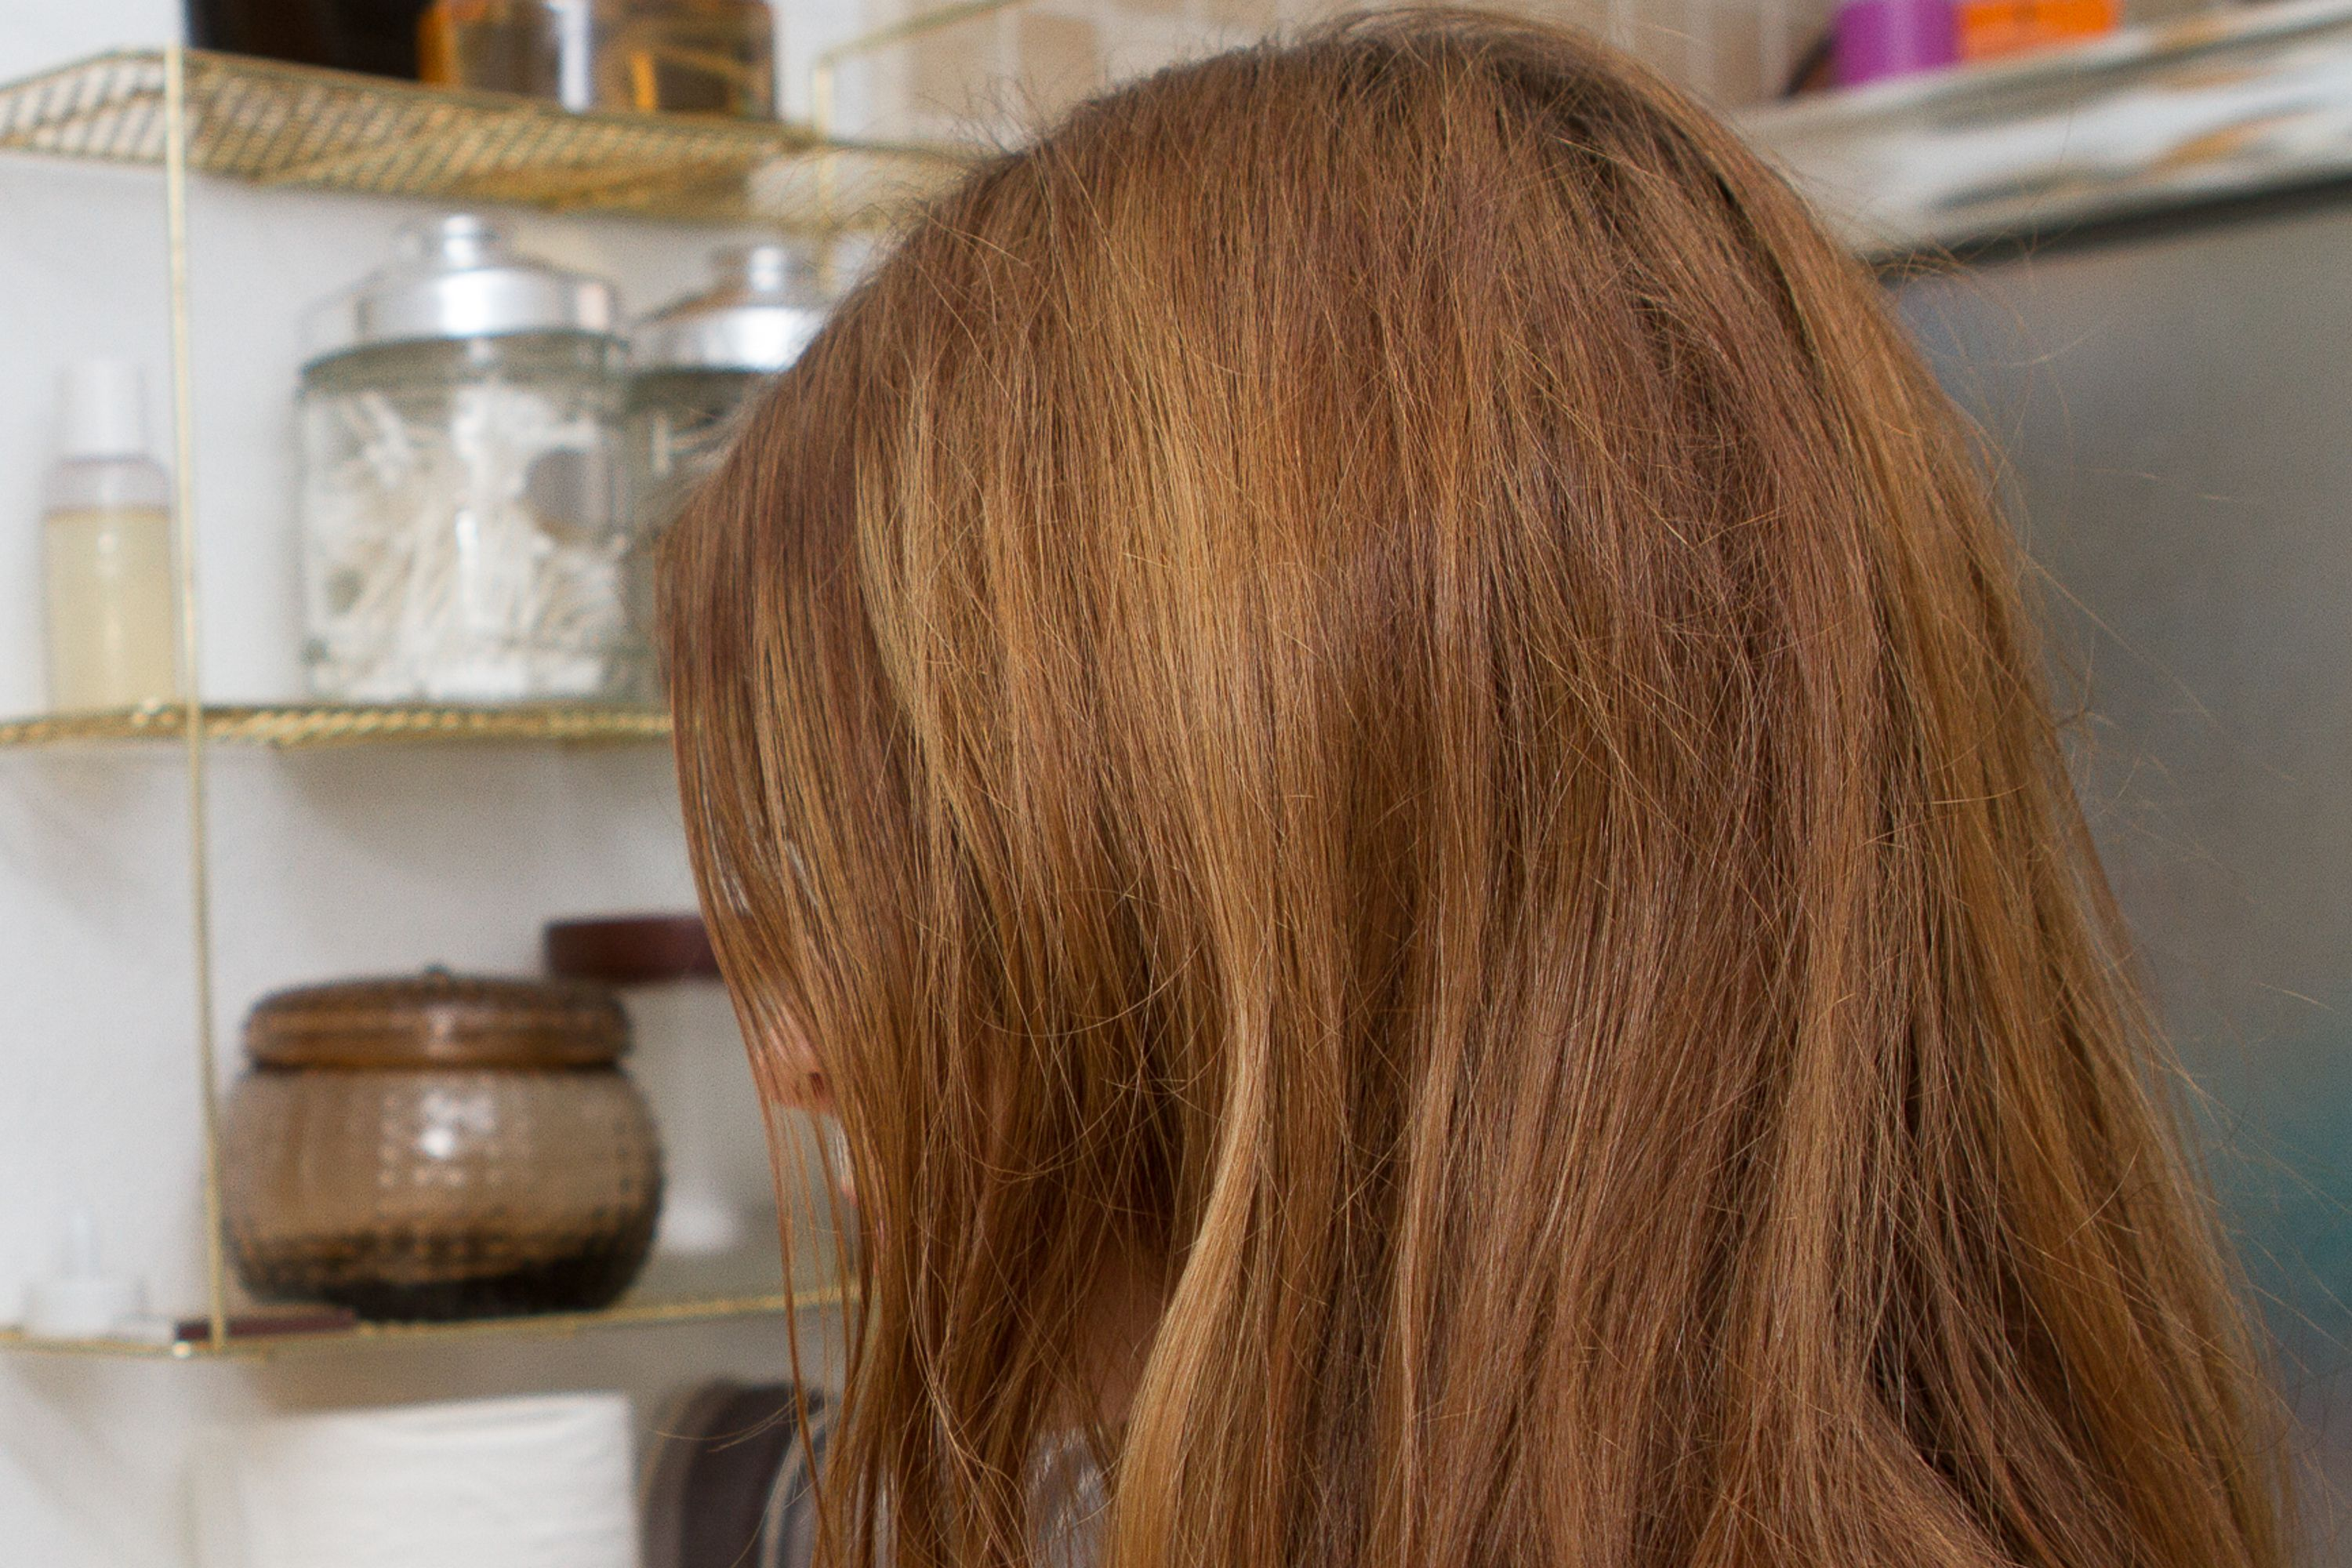 Home Remedy to Remove Discoloration From Well Water From Blonde Hair ...